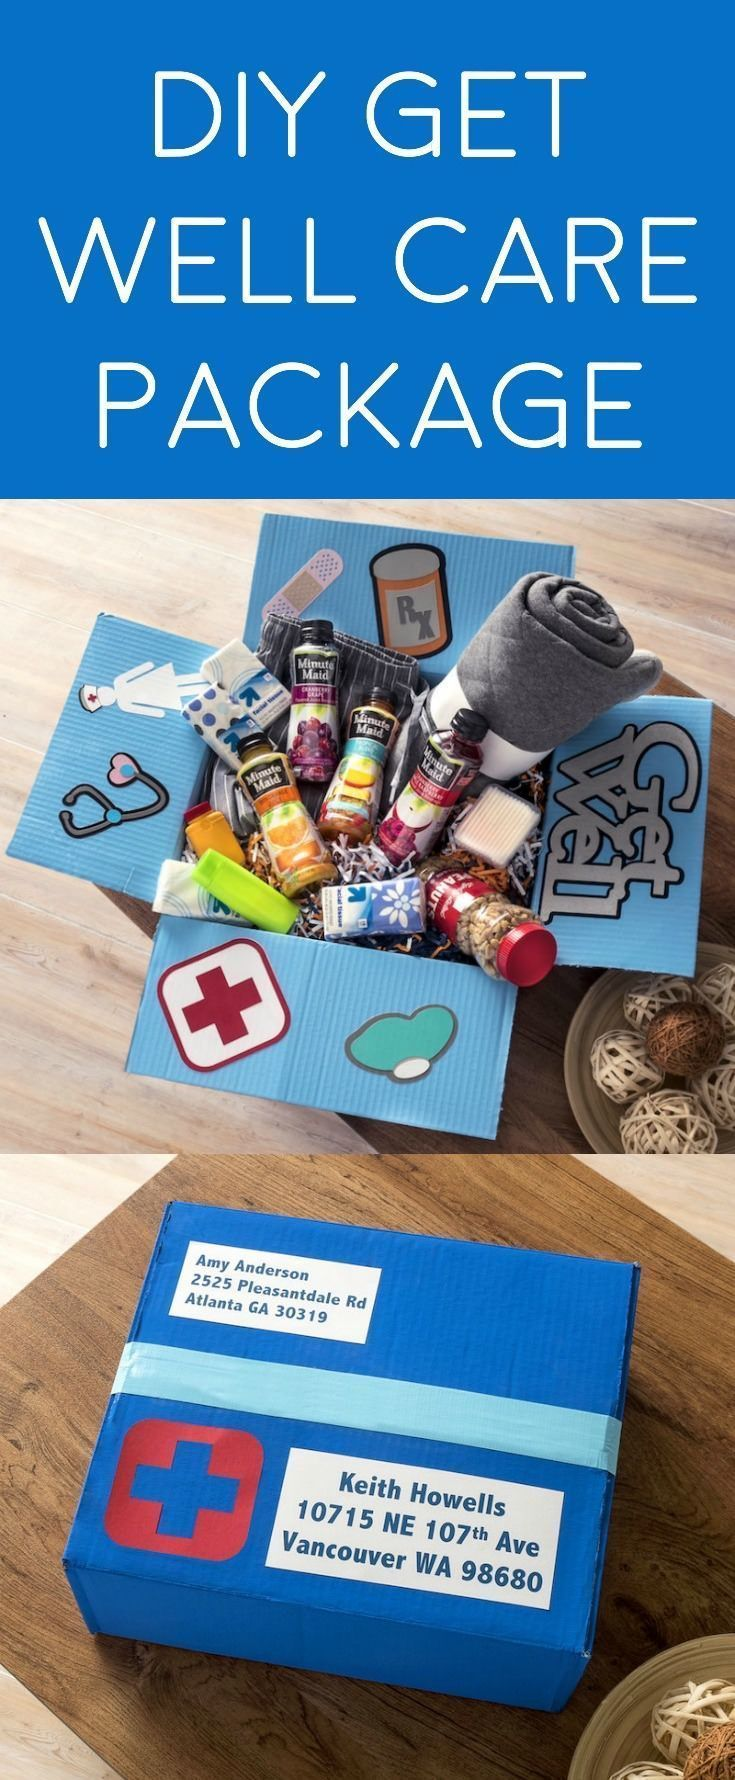 diy get well care package for a loved one | college care package